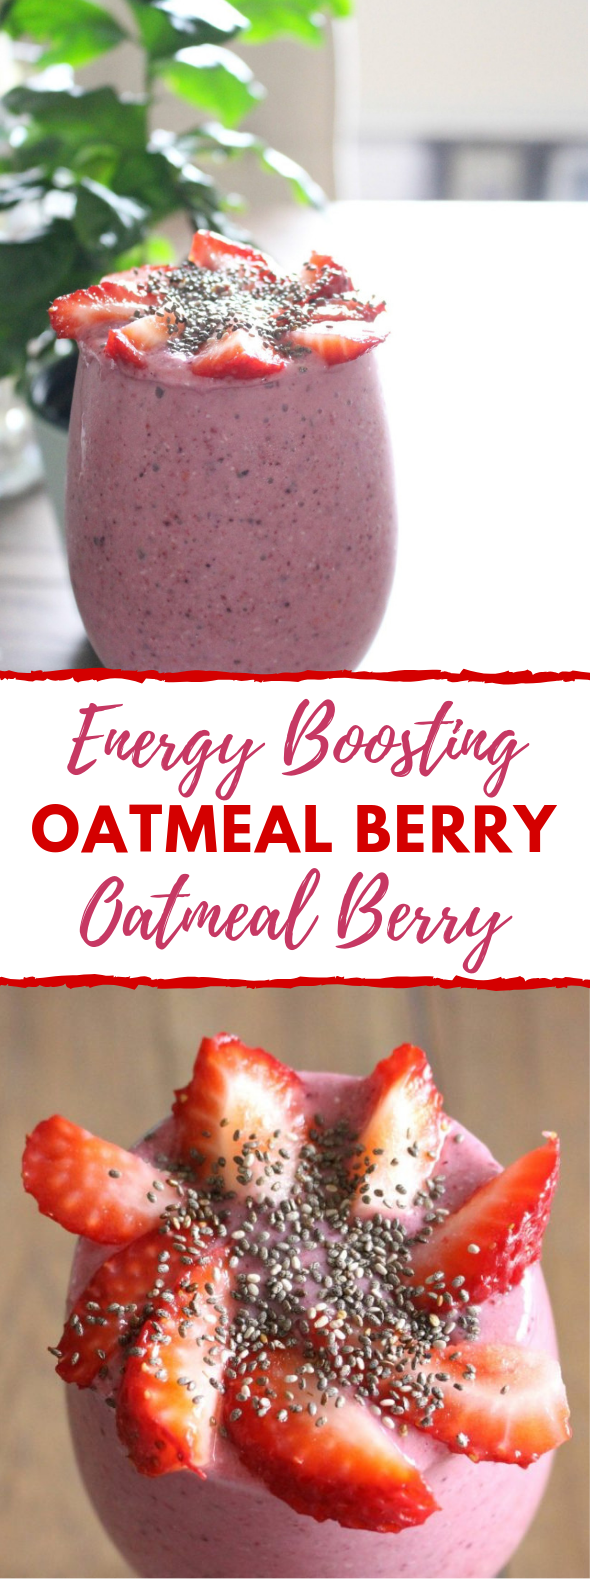 ENERGY BOOSTING OATMEAL BERRY BREAKFAST SMOOTHIE #healthydrink #sugarfree